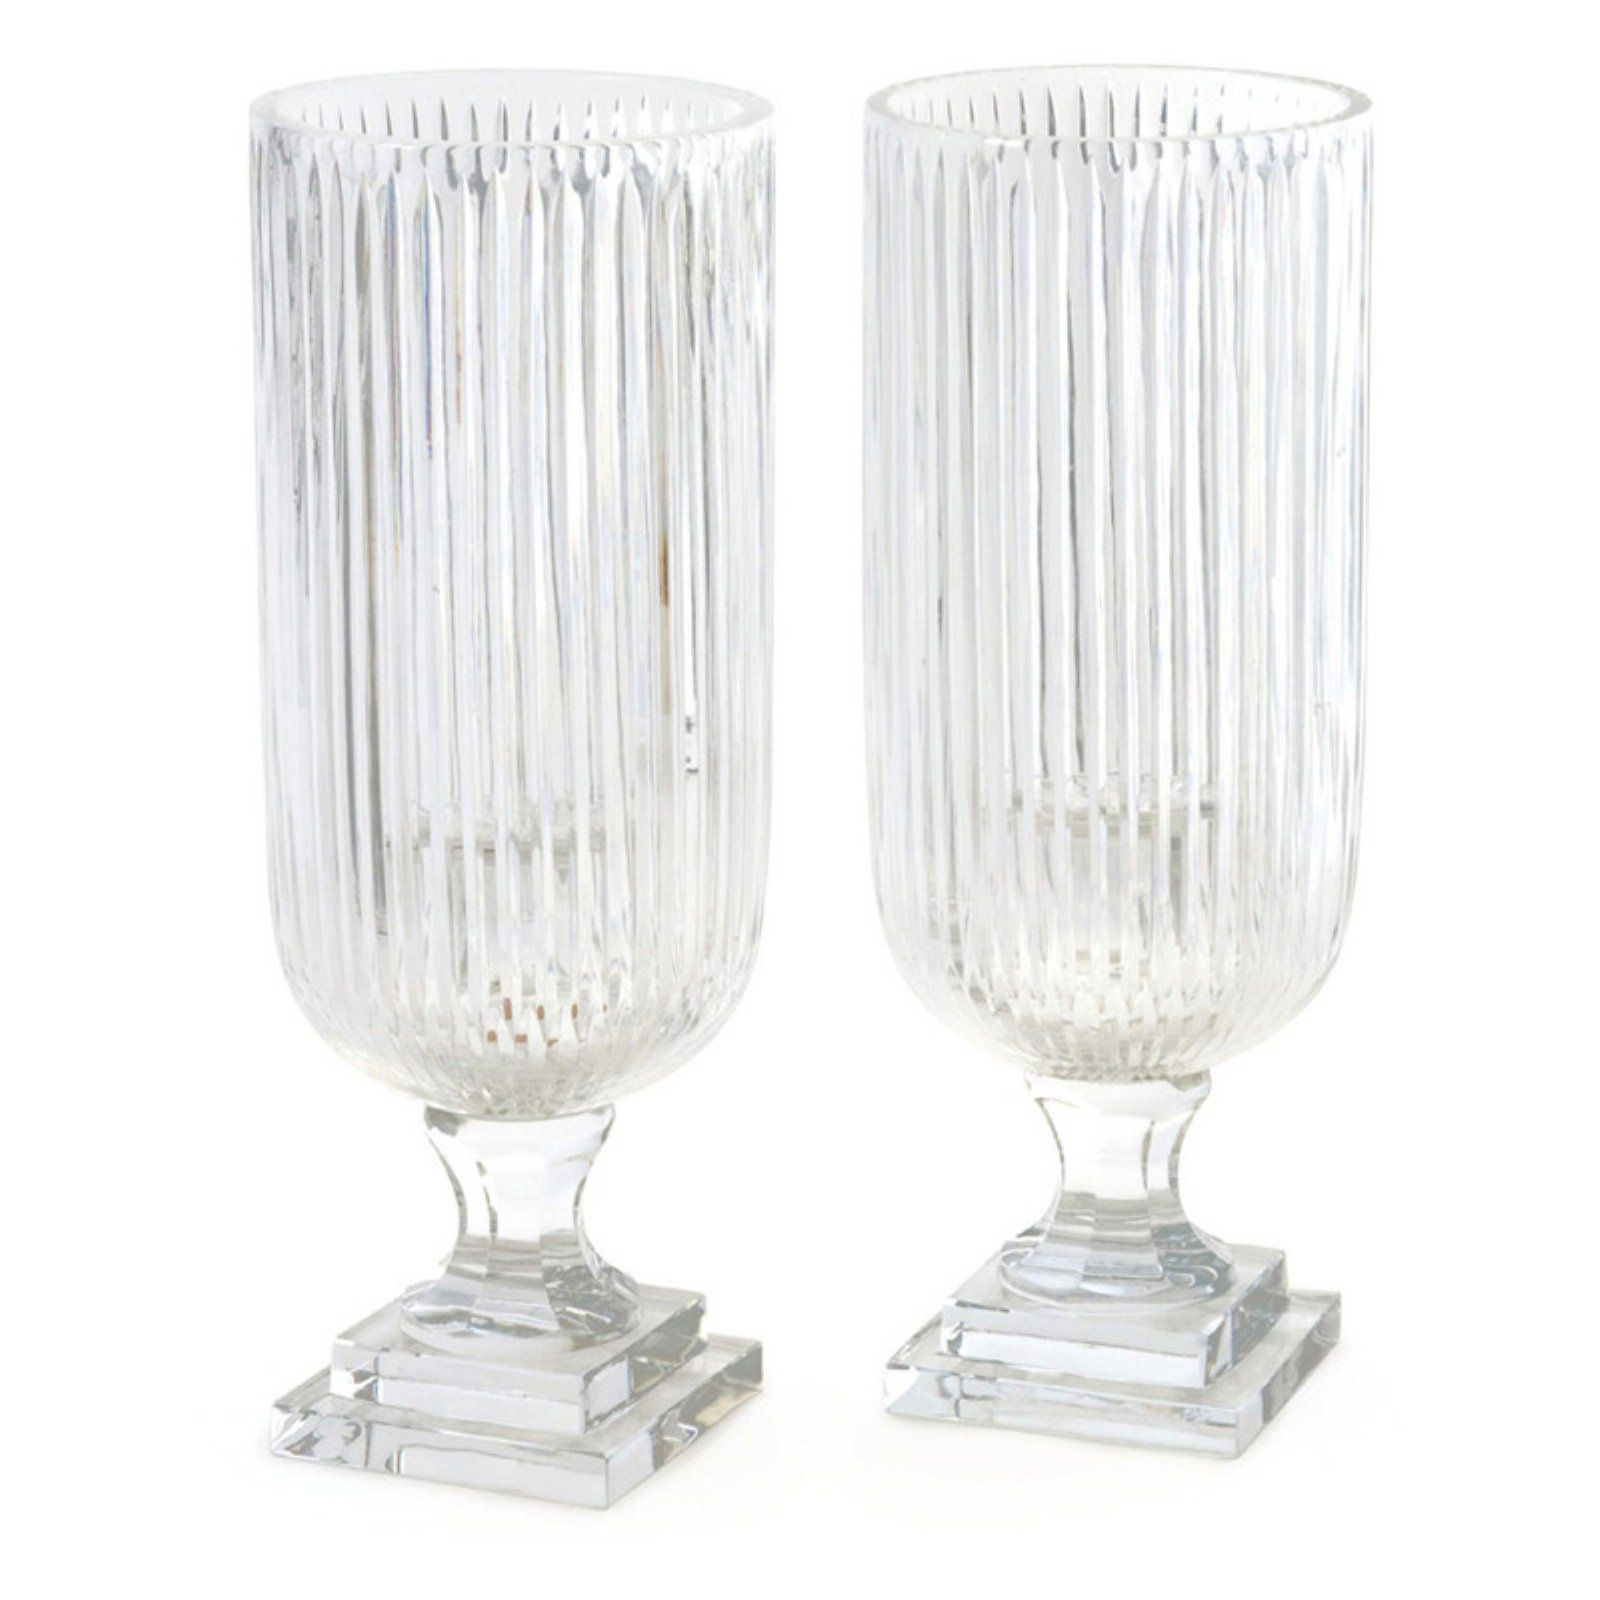 Hip Vintage Linear Hurricane Candle Holder - Set of 2